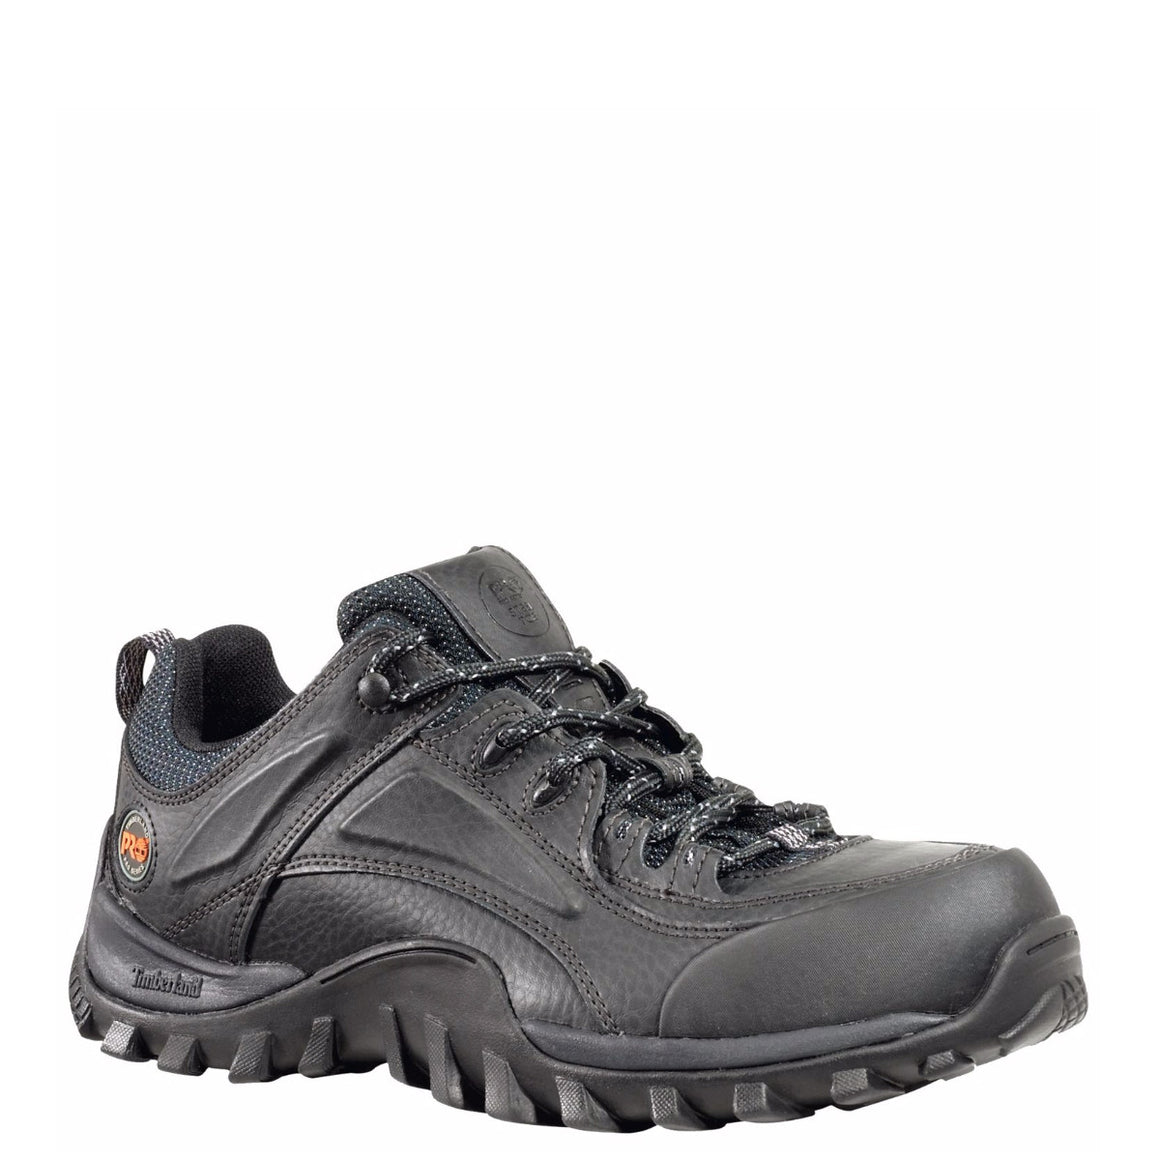 Timberland Pro Men's Mudsill Steel Toe Work Shoes - Black 40008 - ShoeShackOnline